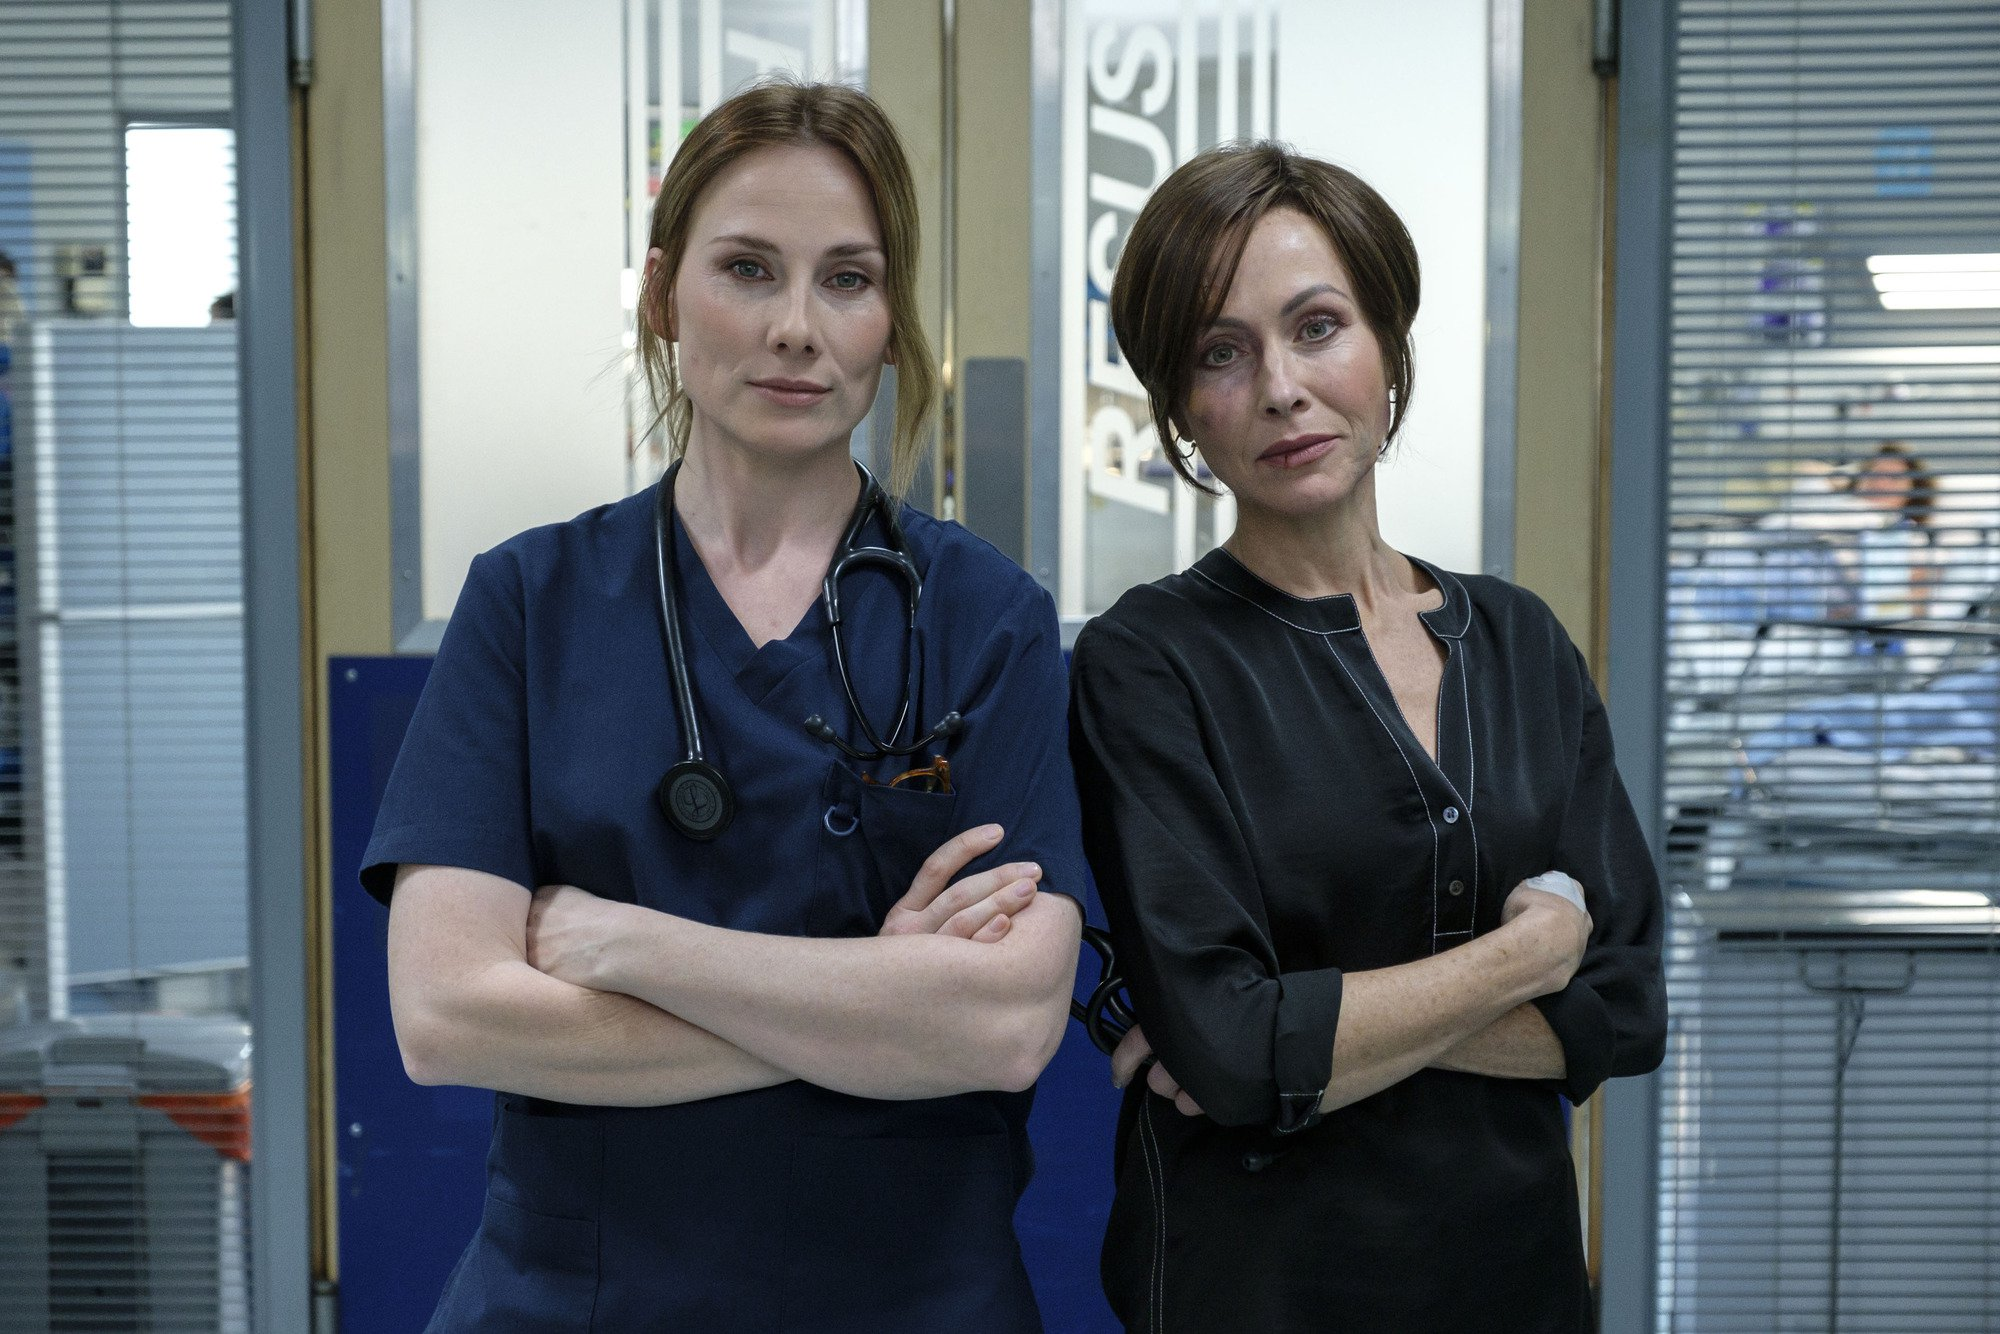 How many Holby City and Casualty crossover episodes are there and when are they on?